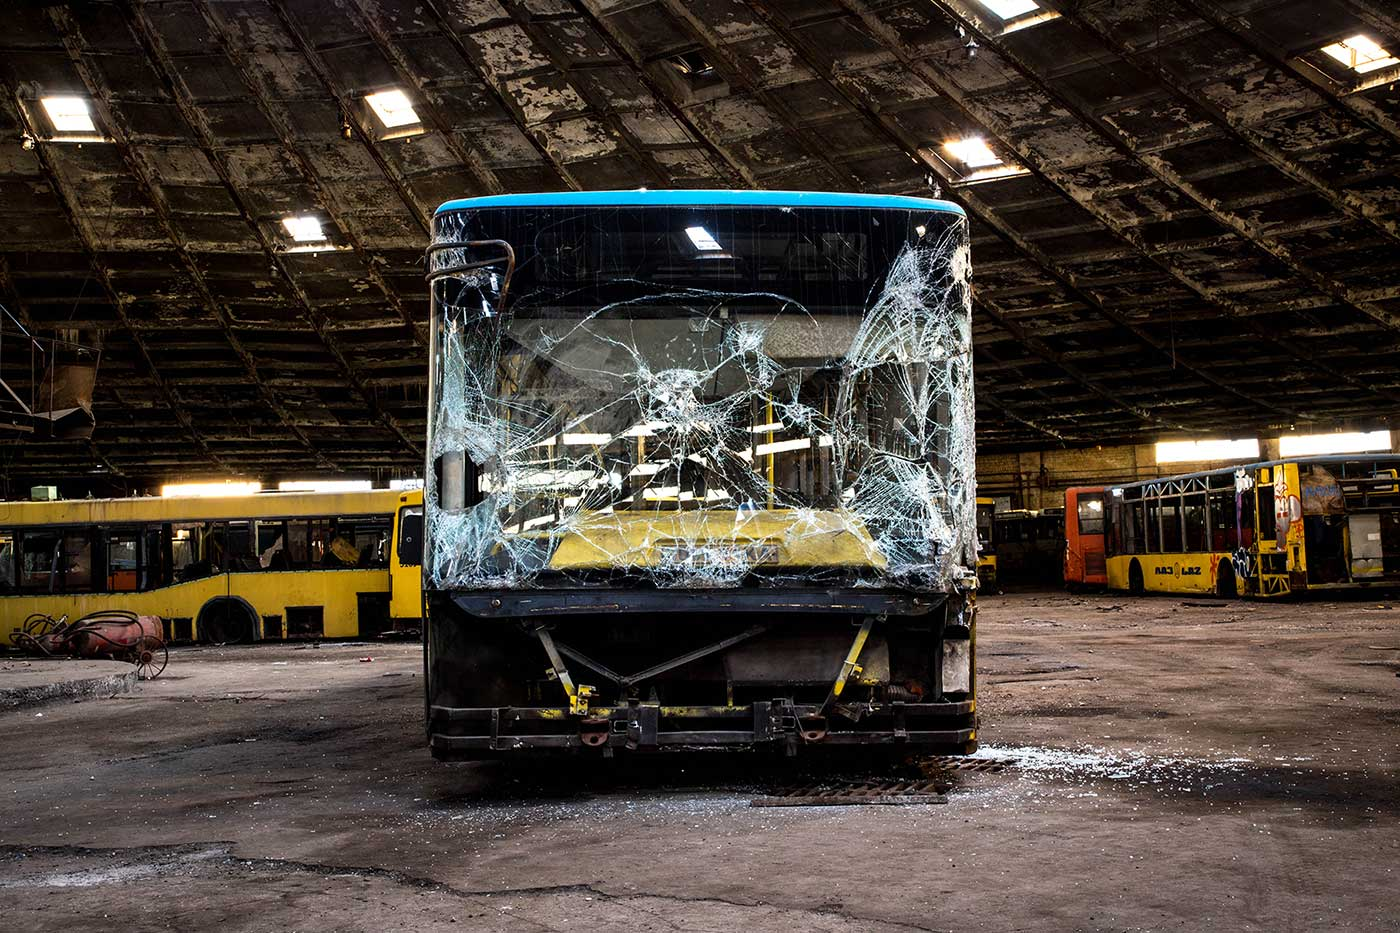 Many of the vehicles in Autobus Park №7 today were retired here after being damaged in road accidents. Autobus Park №7: the abandoned bus depot in Kyiv, Ukraine.